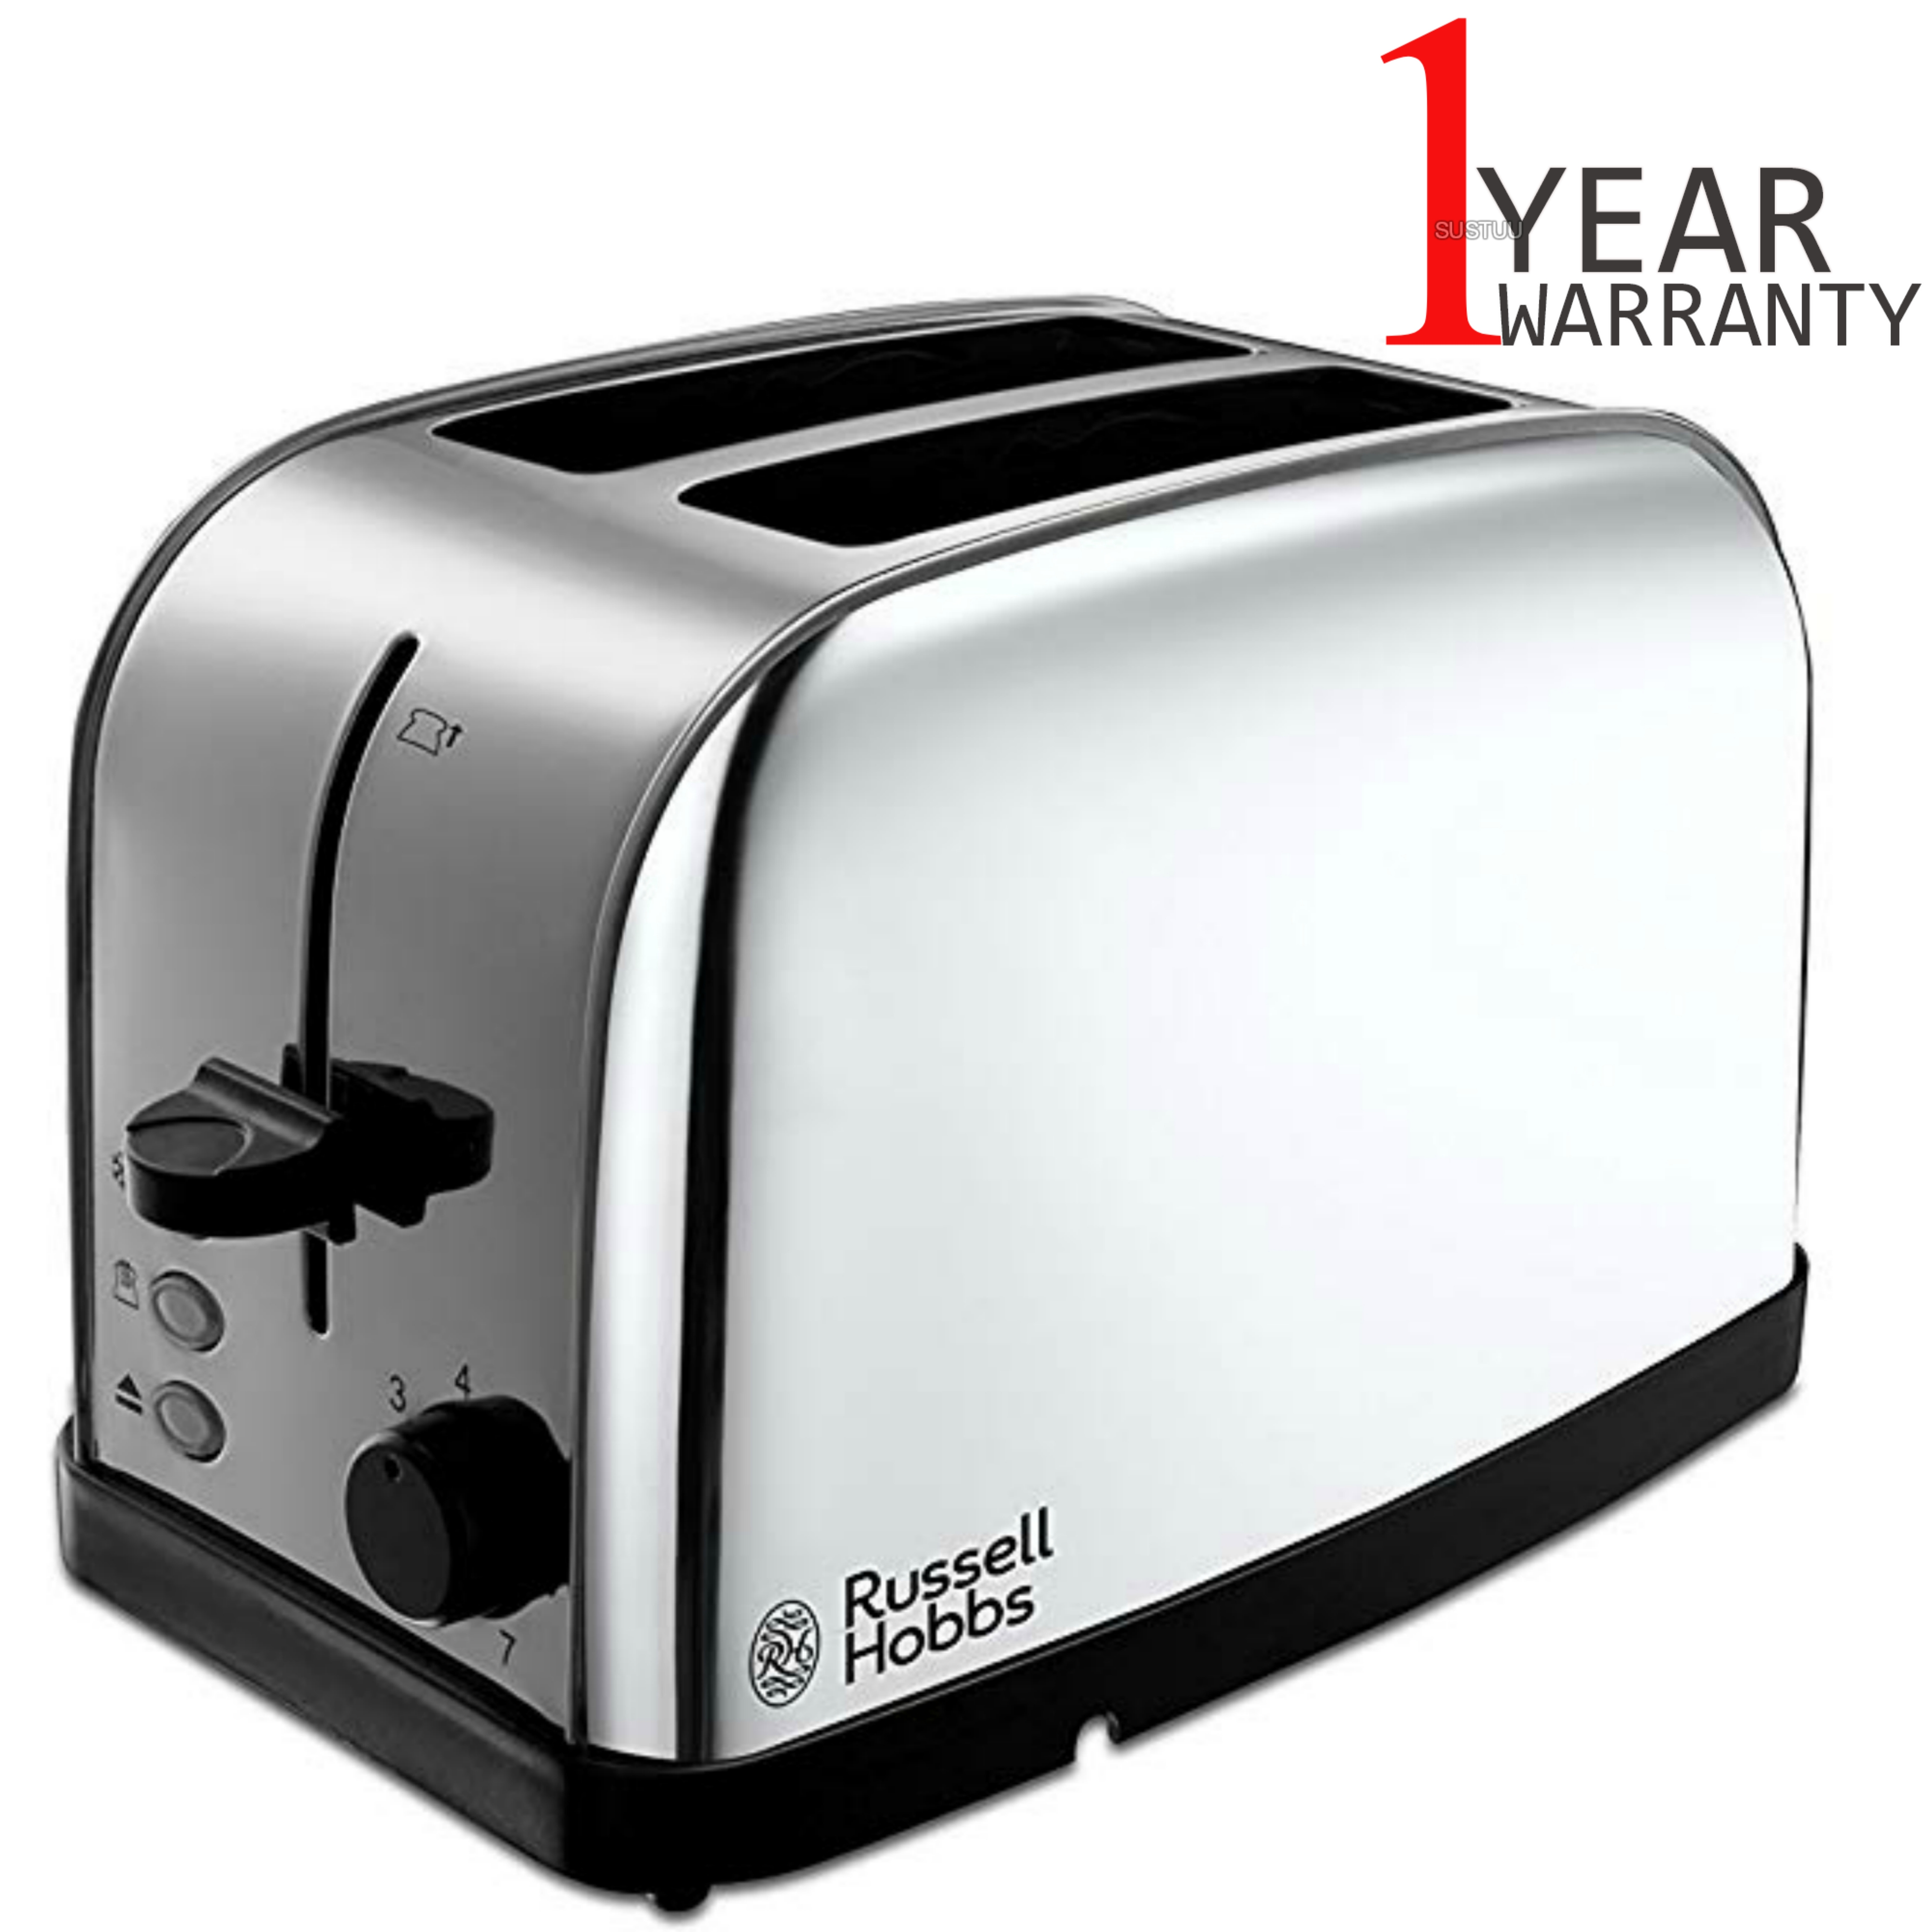 Russell Hobbs 18784 Dorchester 2-Slice Toaster | Reheat Function | Stainless Steel